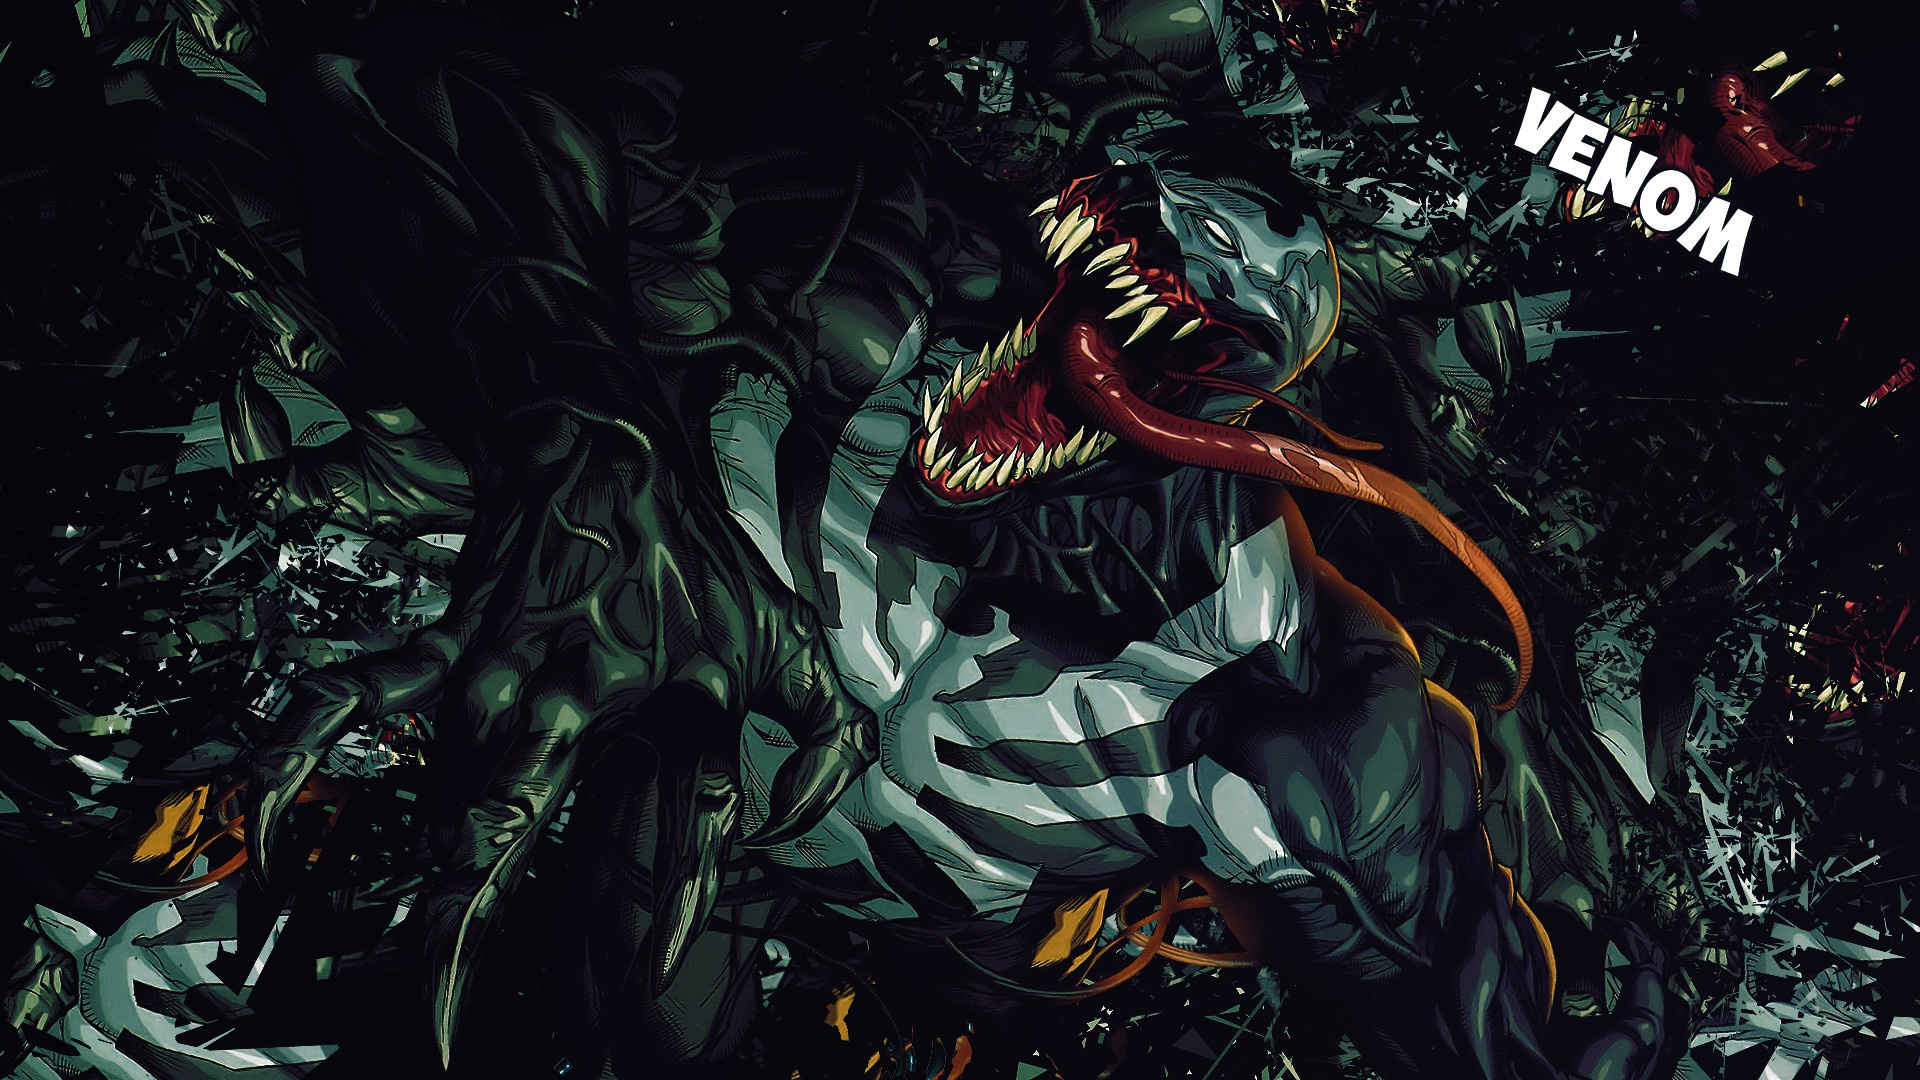 Images Of Venom Eyes And Teeth Wallpaper Tumblr Rock Cafe